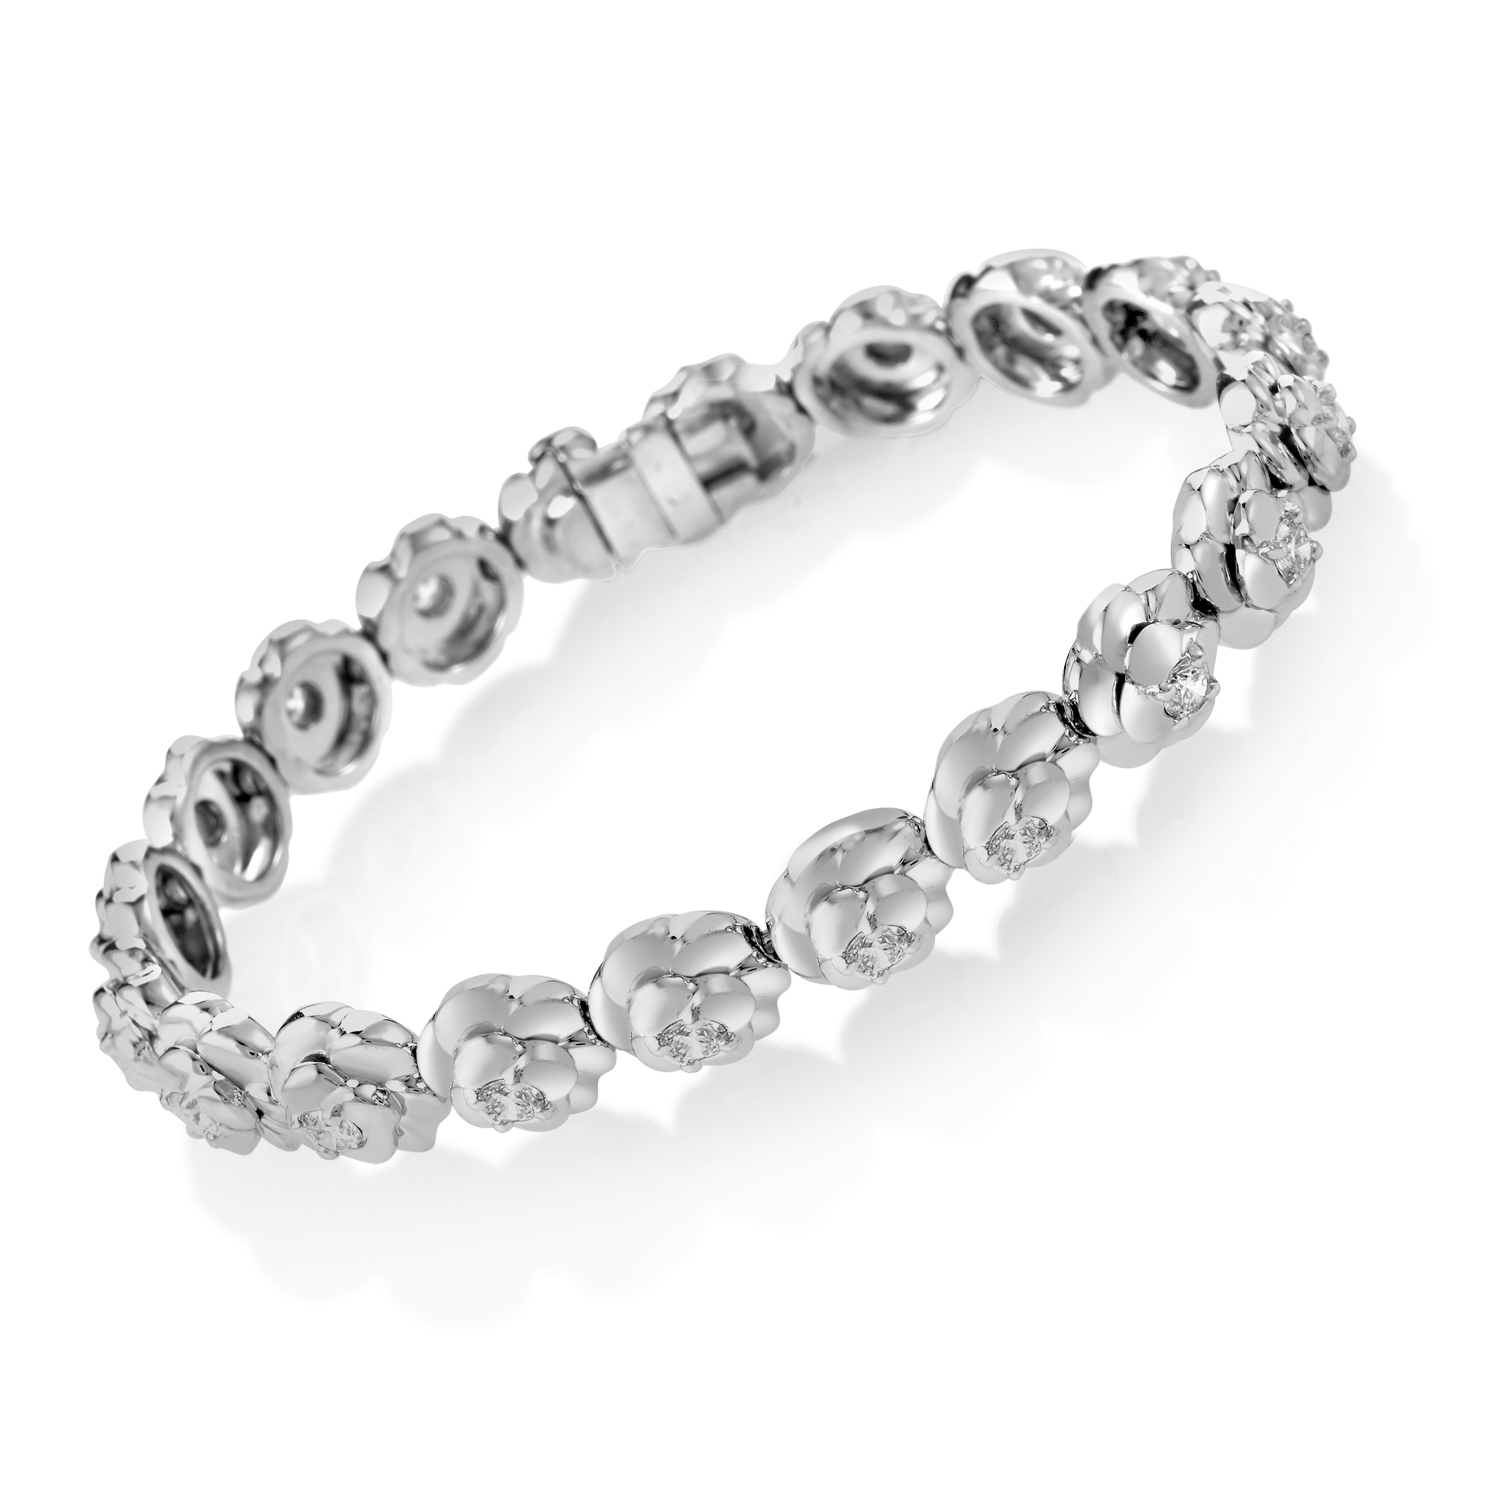 Chanel Camelia 18K White Gold Diamond Bracelet AK1B764